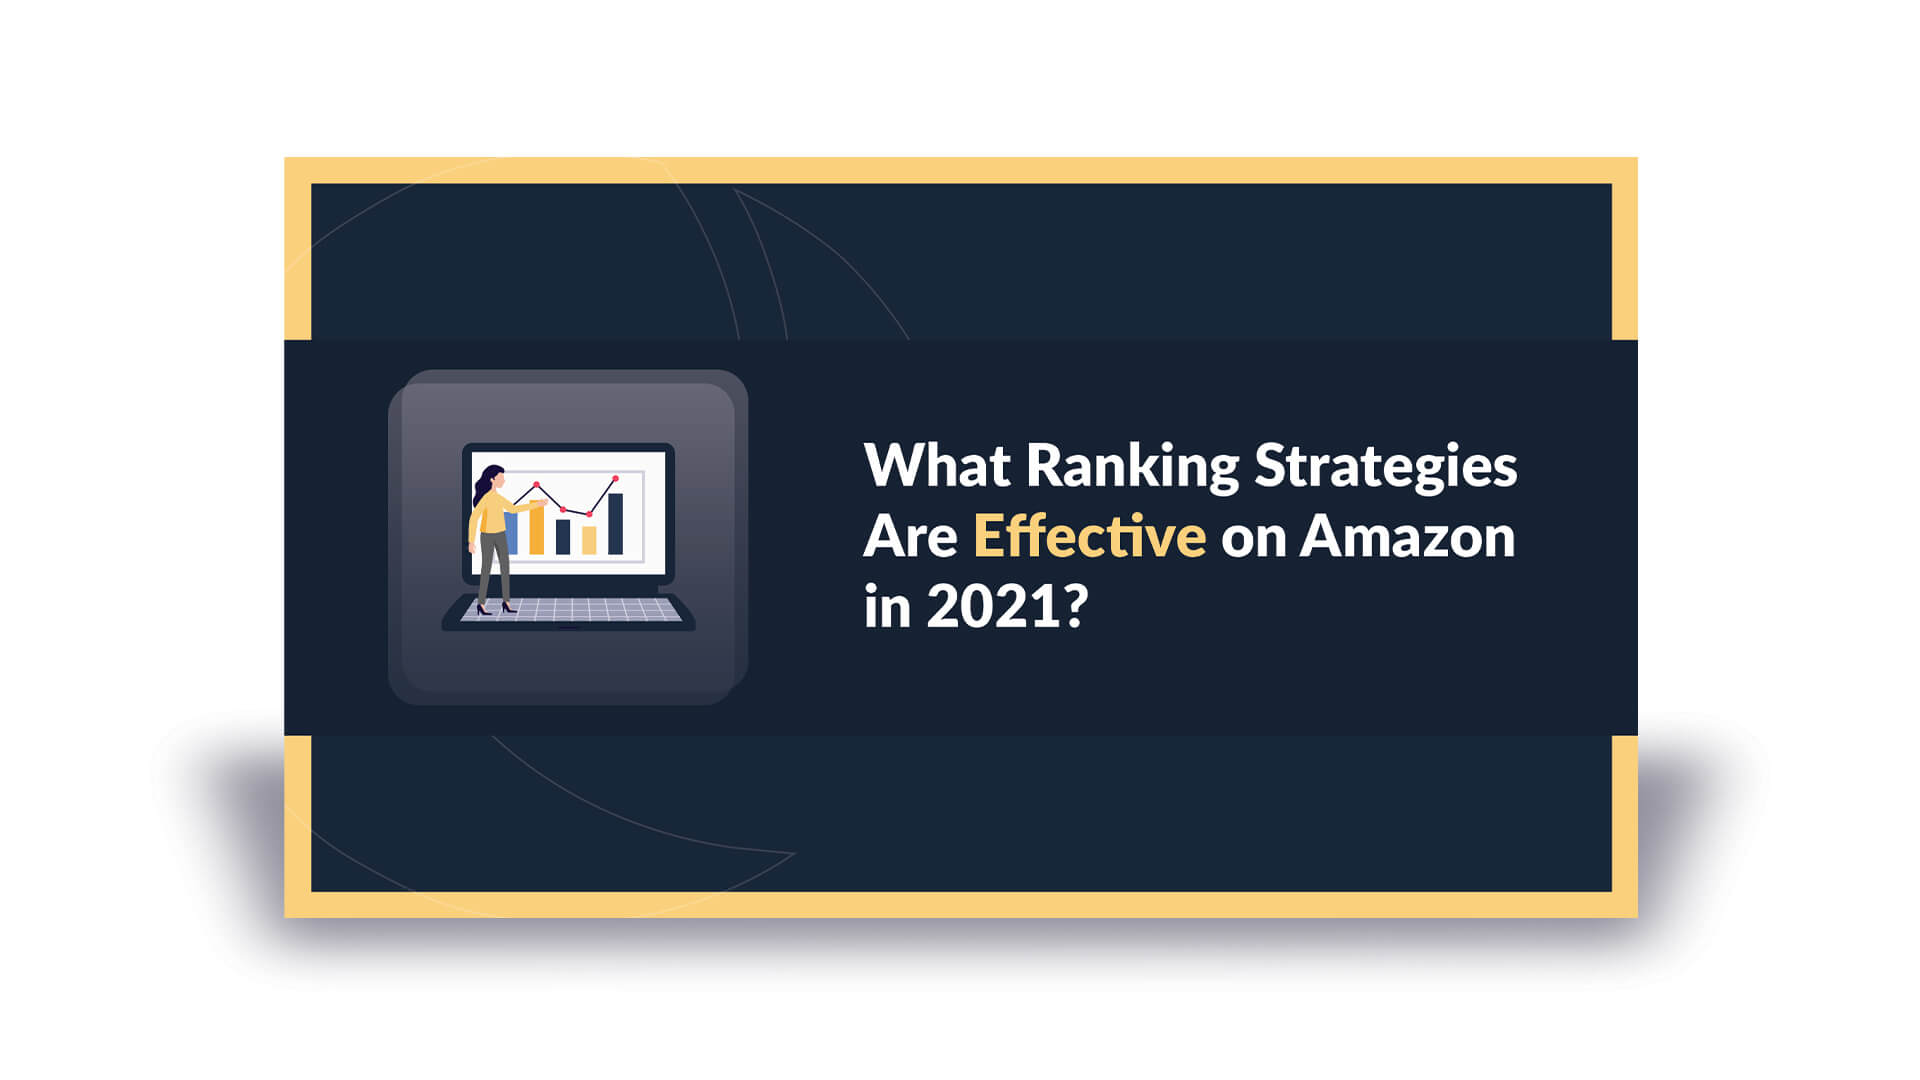 What Ranking Strategies Are Effective on Amazon in 2021?